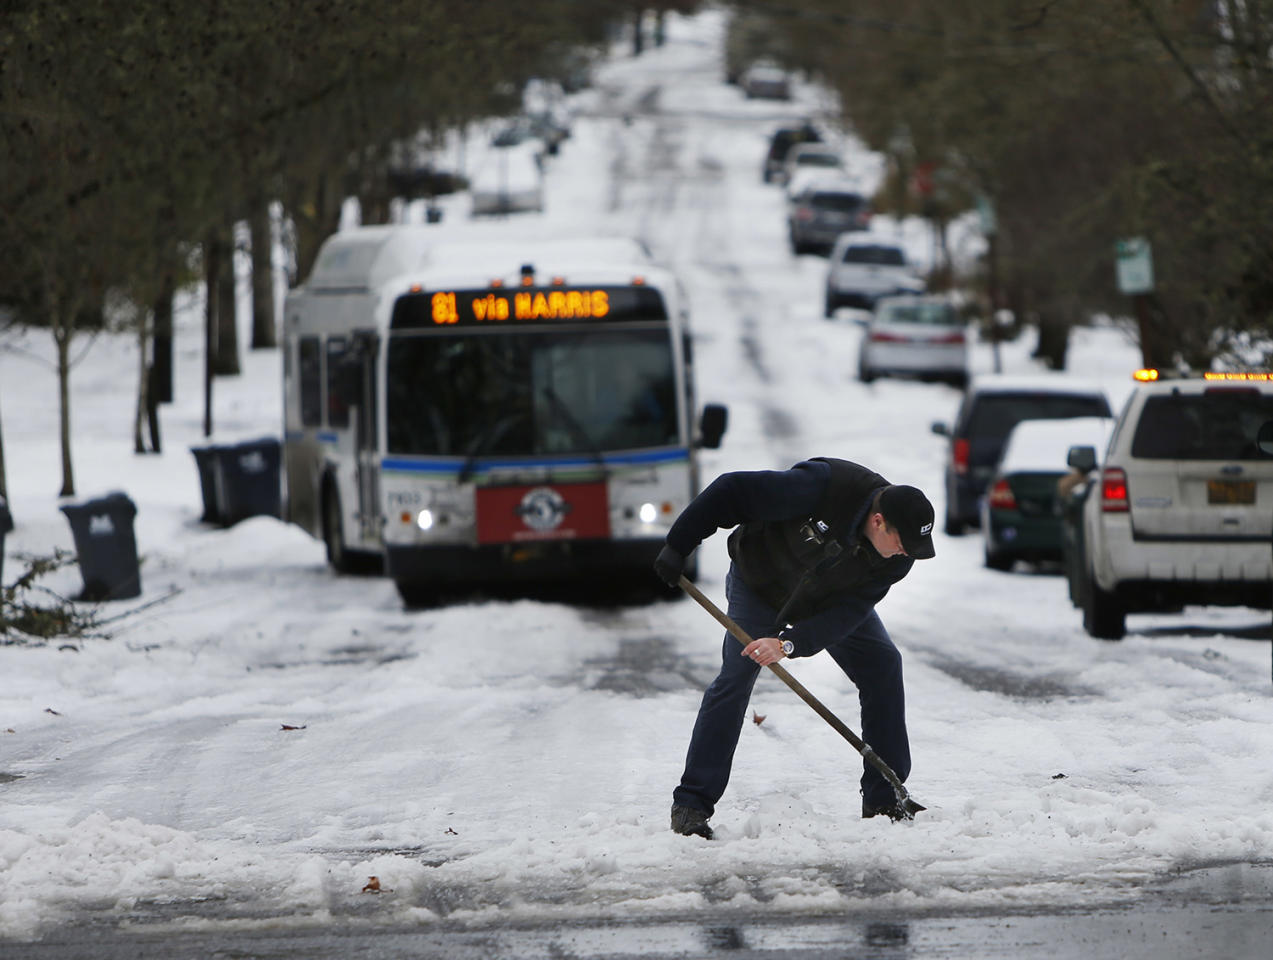 <p>An LTD field supervisor works to get a bus moving after it became stuck near Harris Street in Eugene. Ore. Monday Jan. 9. 2017. Many roads remained snow and ice-covered from weekend storms despite above freezing temperatures. (Andy Nelson/The Register-Guard via AP) </p>